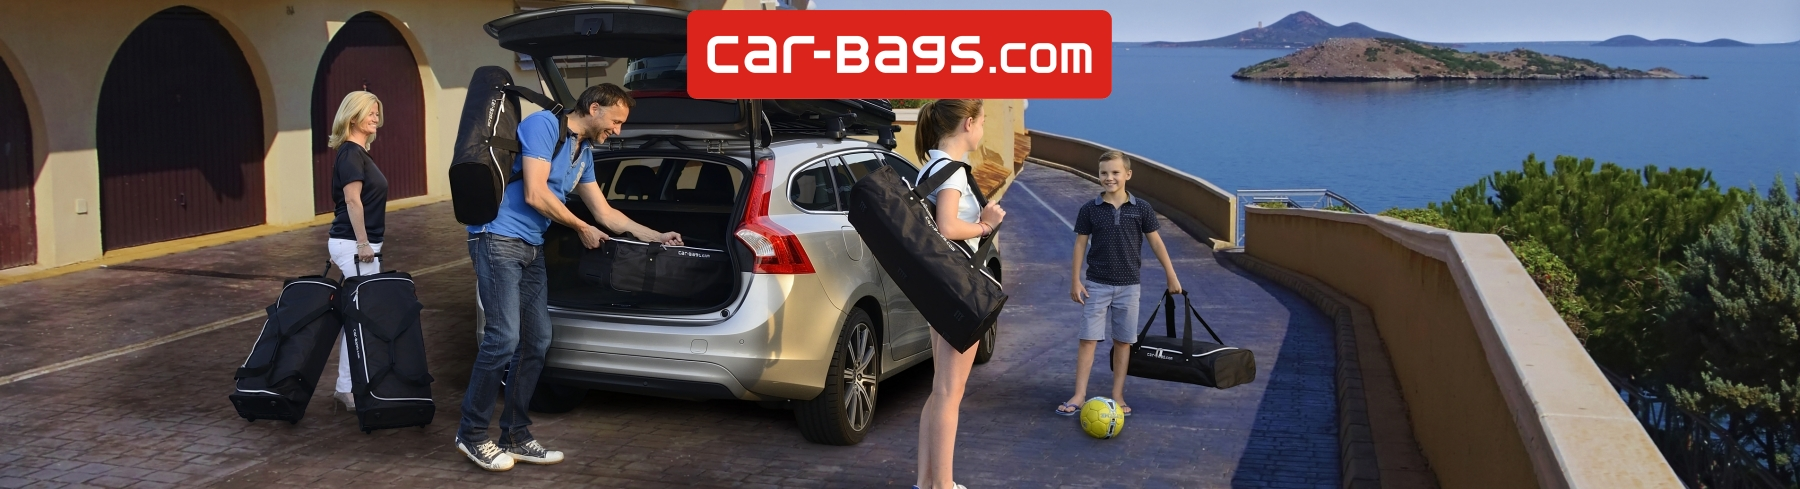 Car-Bags.com travel bags - carefree traveling